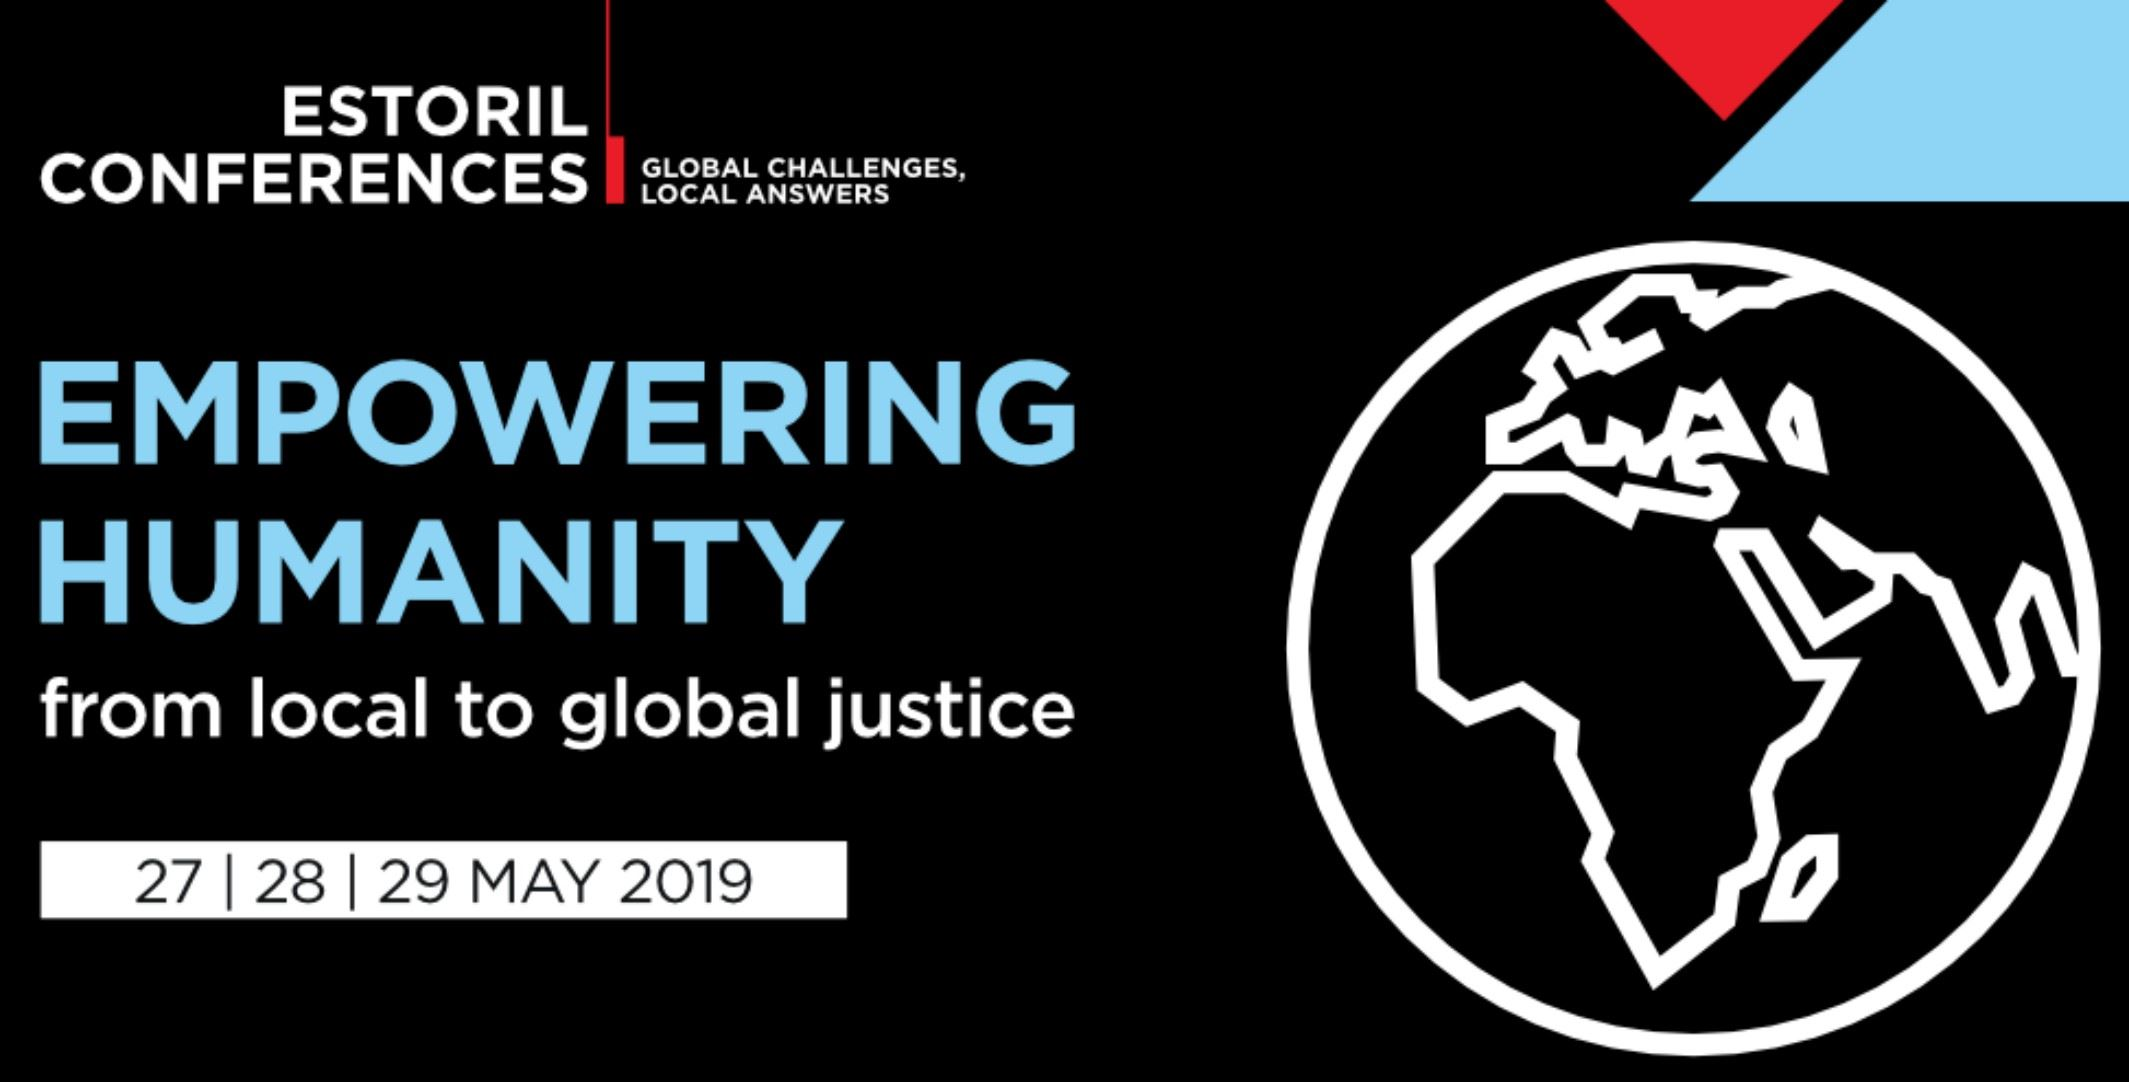 Estoril Conferences 2019 | Empowering Humanity from Local to Global Justice